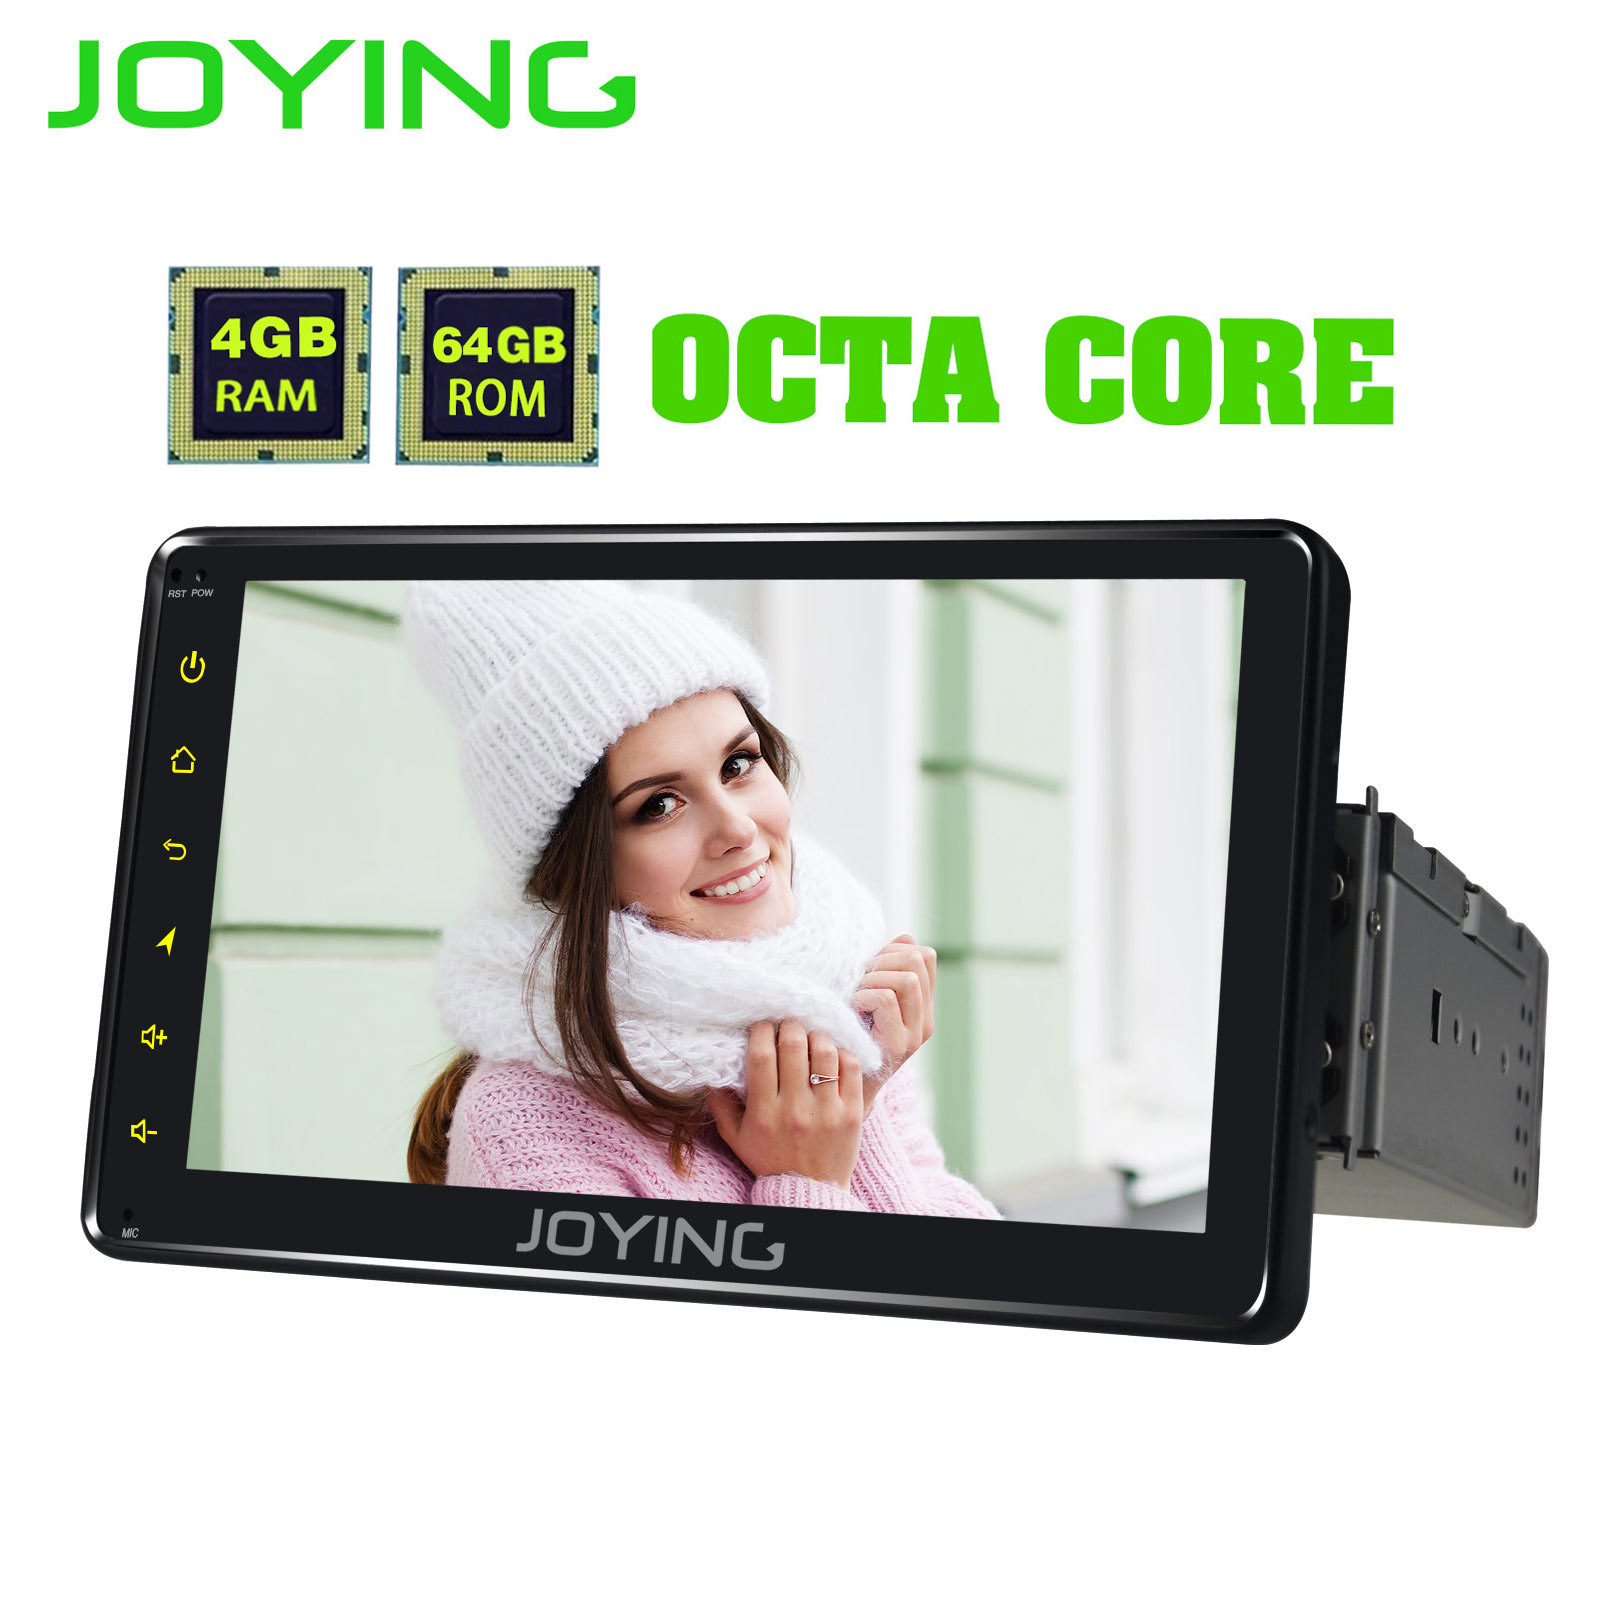 JOYING 8 CORE 4G RAM Android 8.1 car radio 1 din 7/8/9/10.1 Inch car stereo Screen 64G ROM GPS navigation head unit WIFI Carplay image